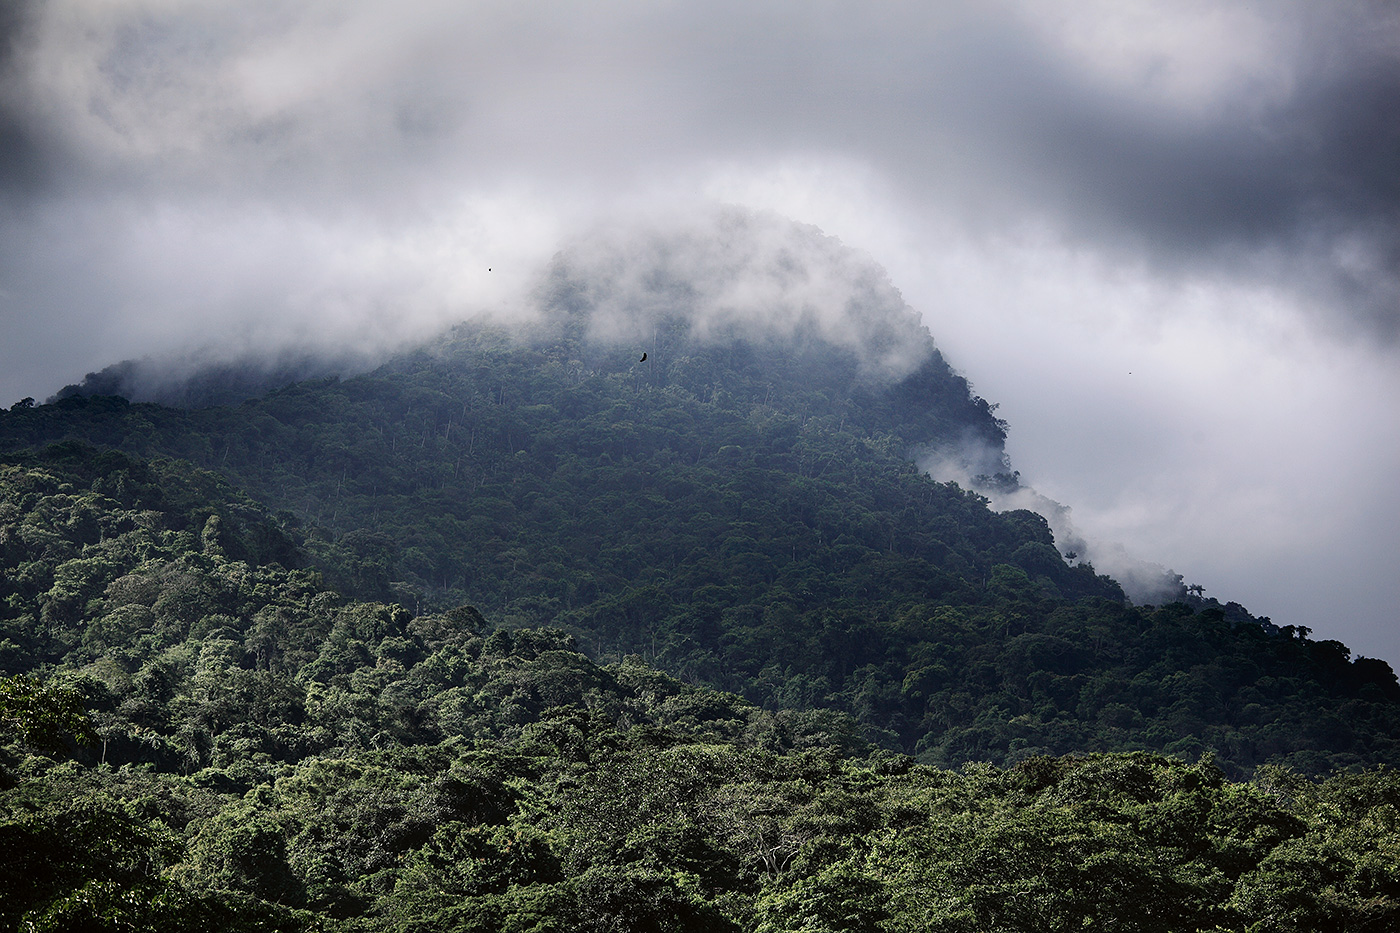 In the jungles beneath Mt. Sorte in northern Venezuela, pilgrims gather each year seeking a mystical union with the natural forces of this land and to honor their Queen, Maria Lionza.